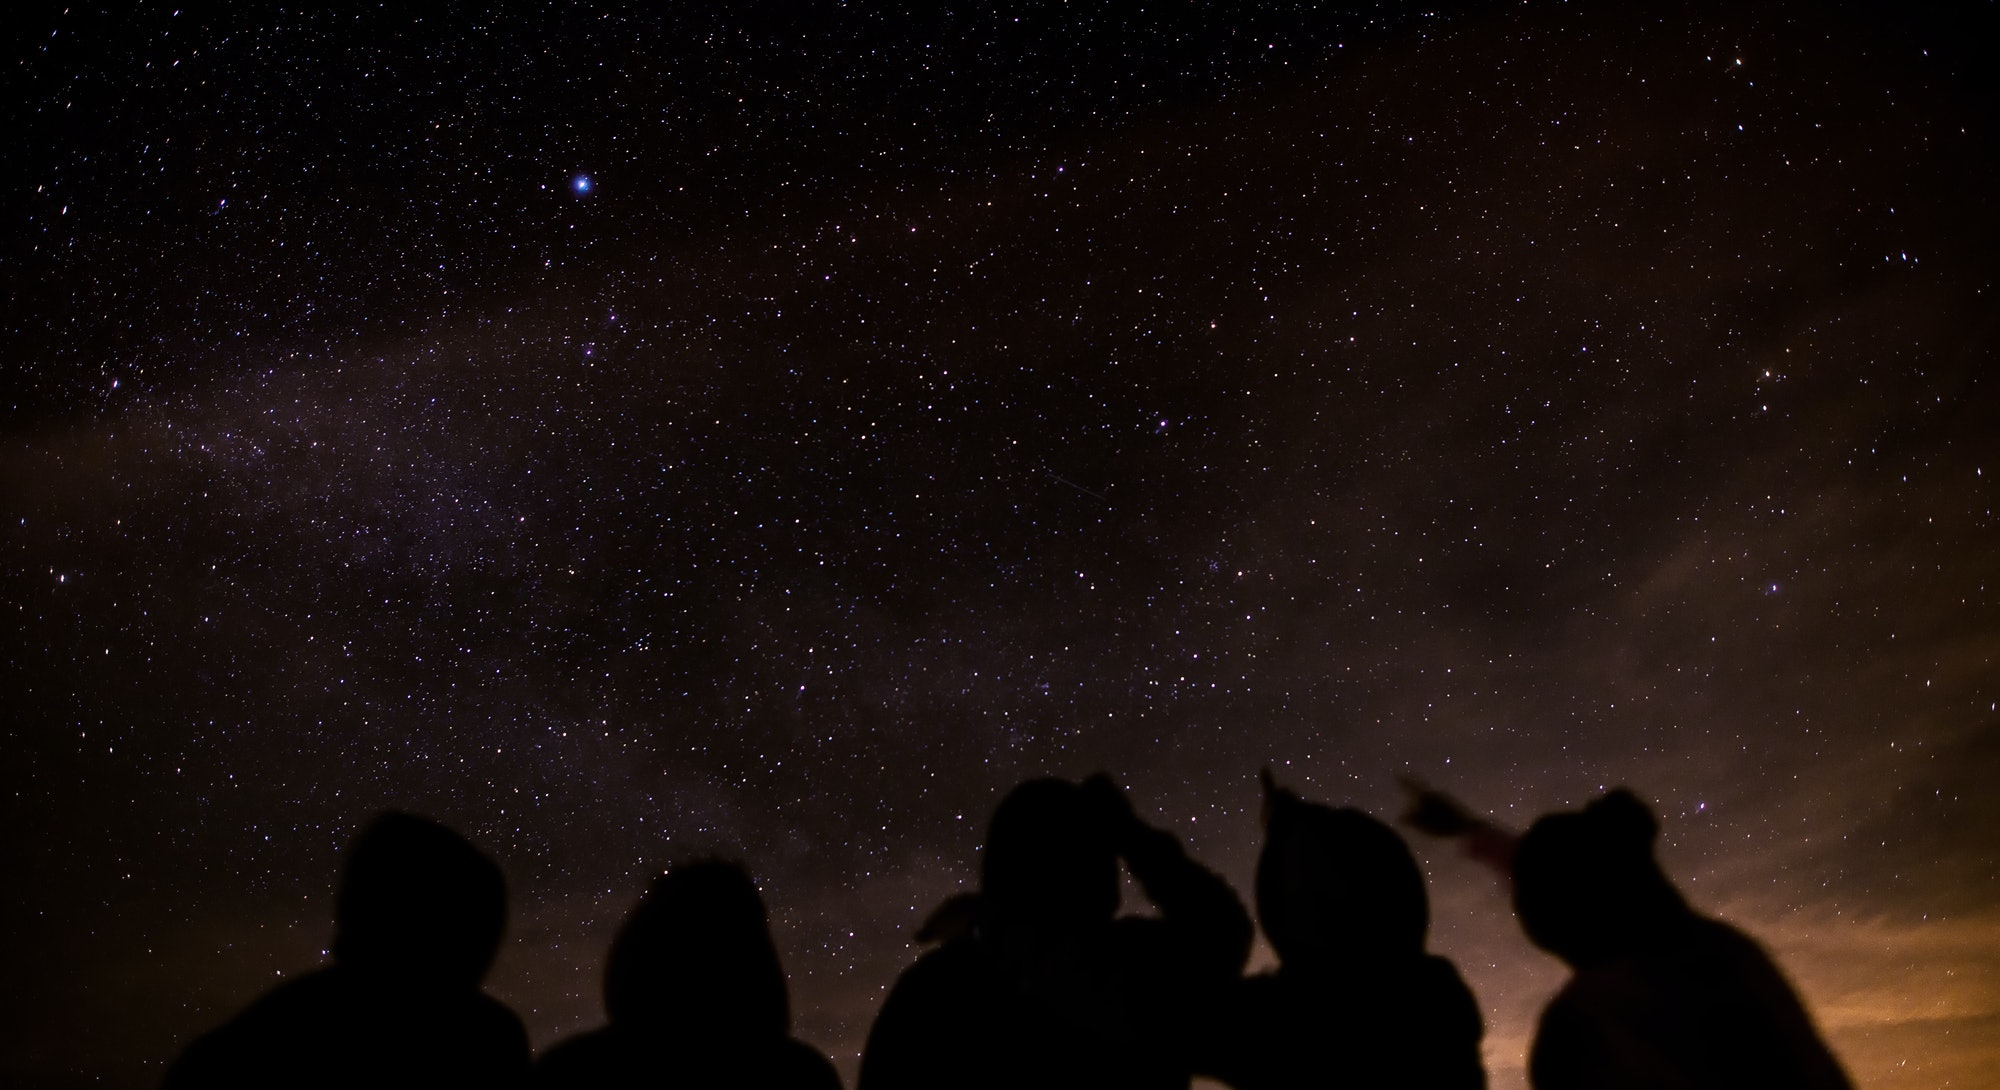 Silhouette of a group of friends stargazing